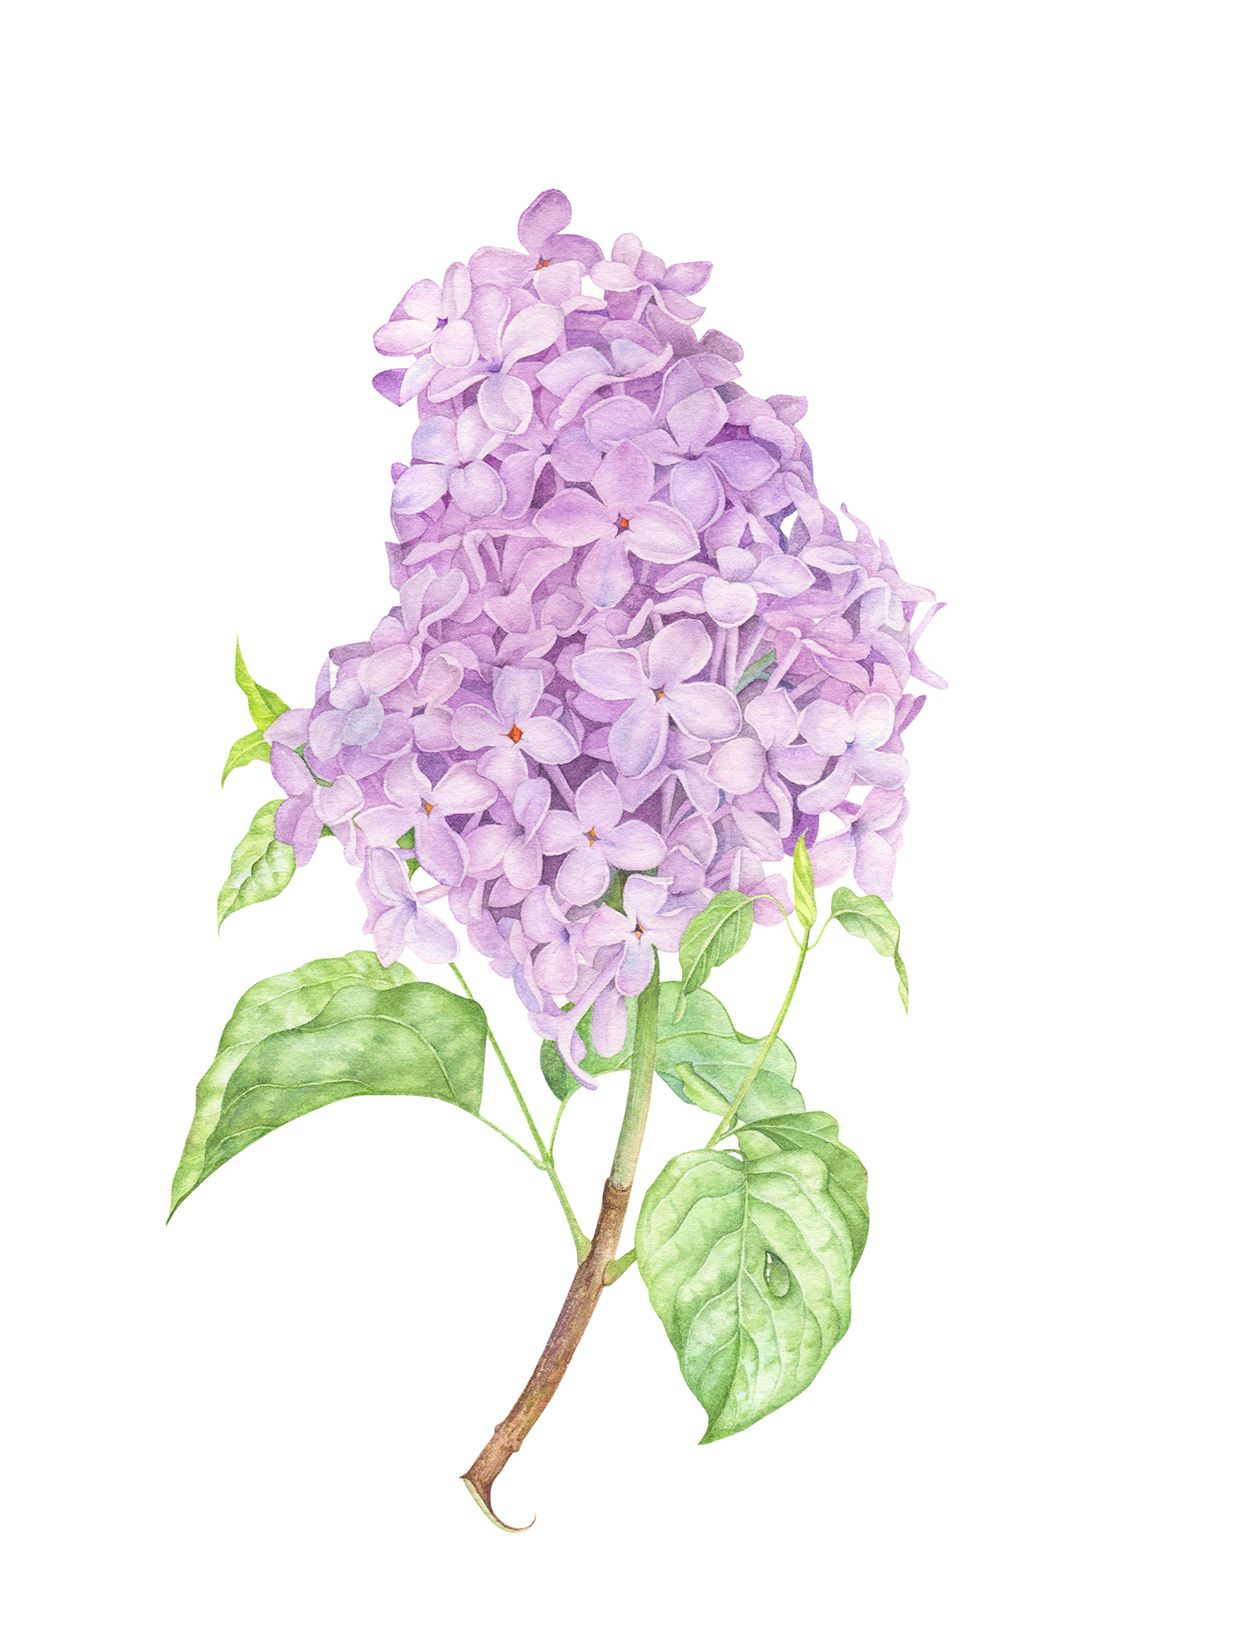 Lilac Botanical Illustration With Watercolor Lilac Painting Watercolor Illustration Watercolor Flowers